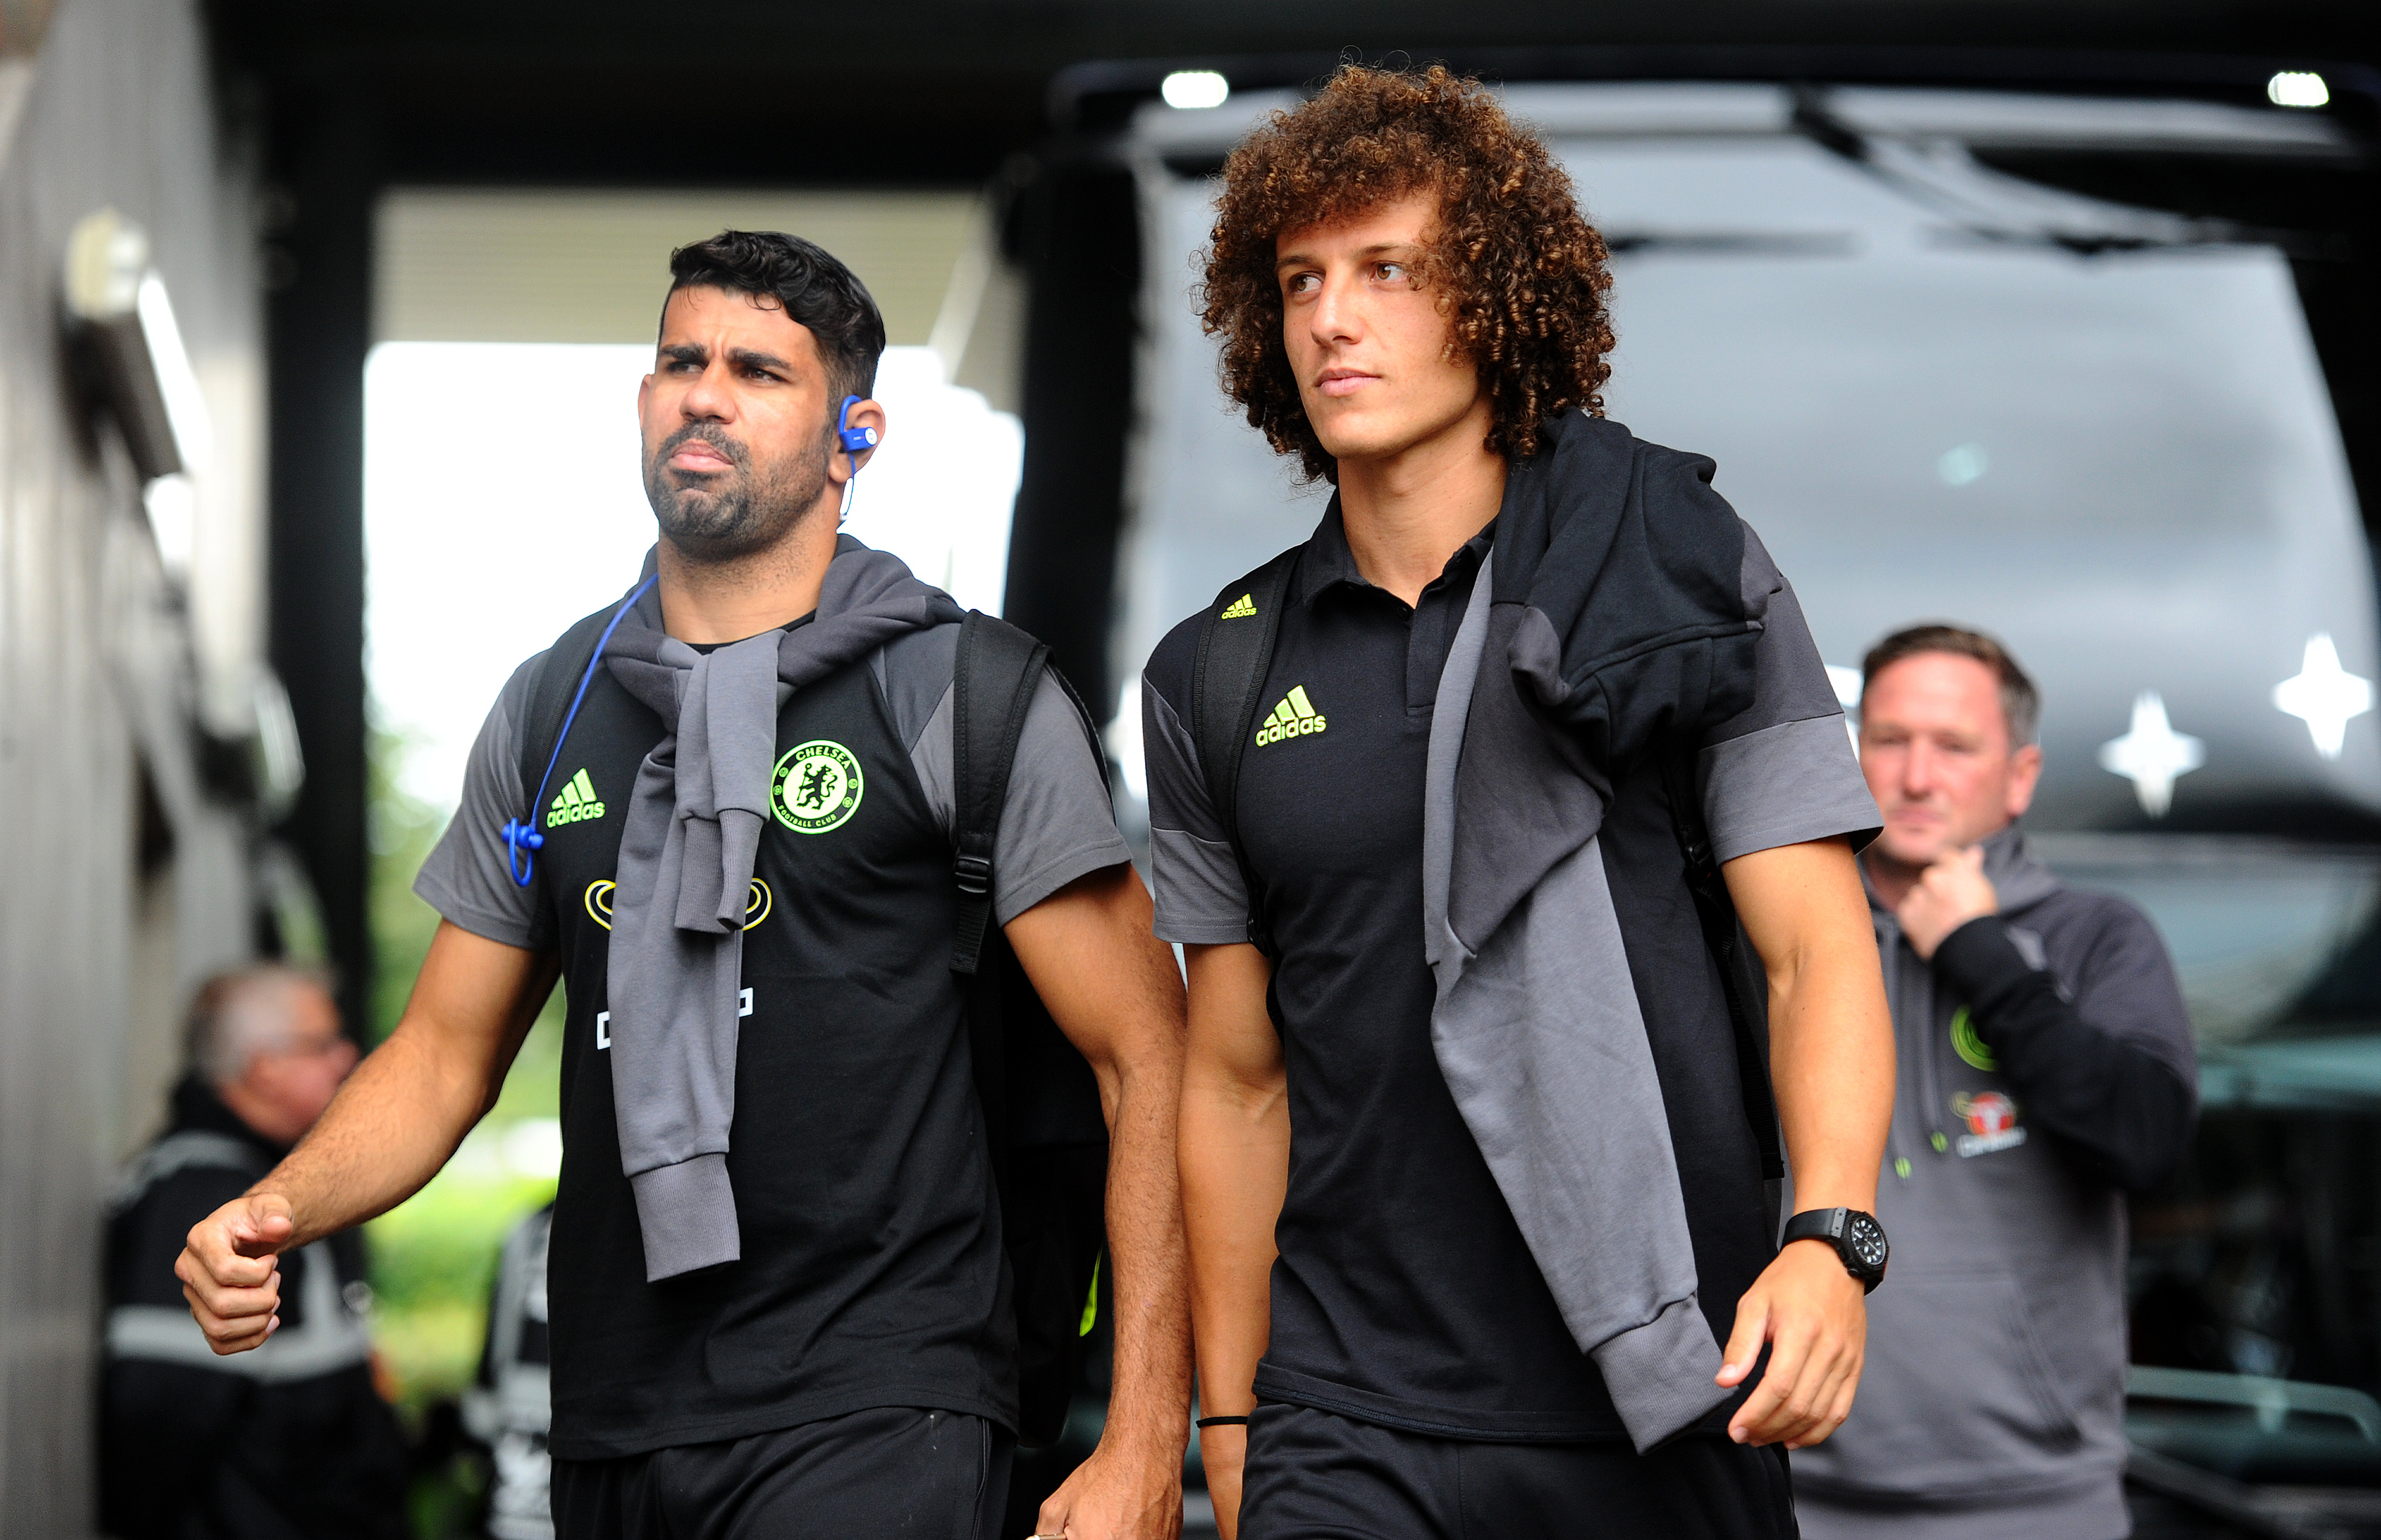 Chelsea: David Luiz starting against Liverpool could be blessing in disguise